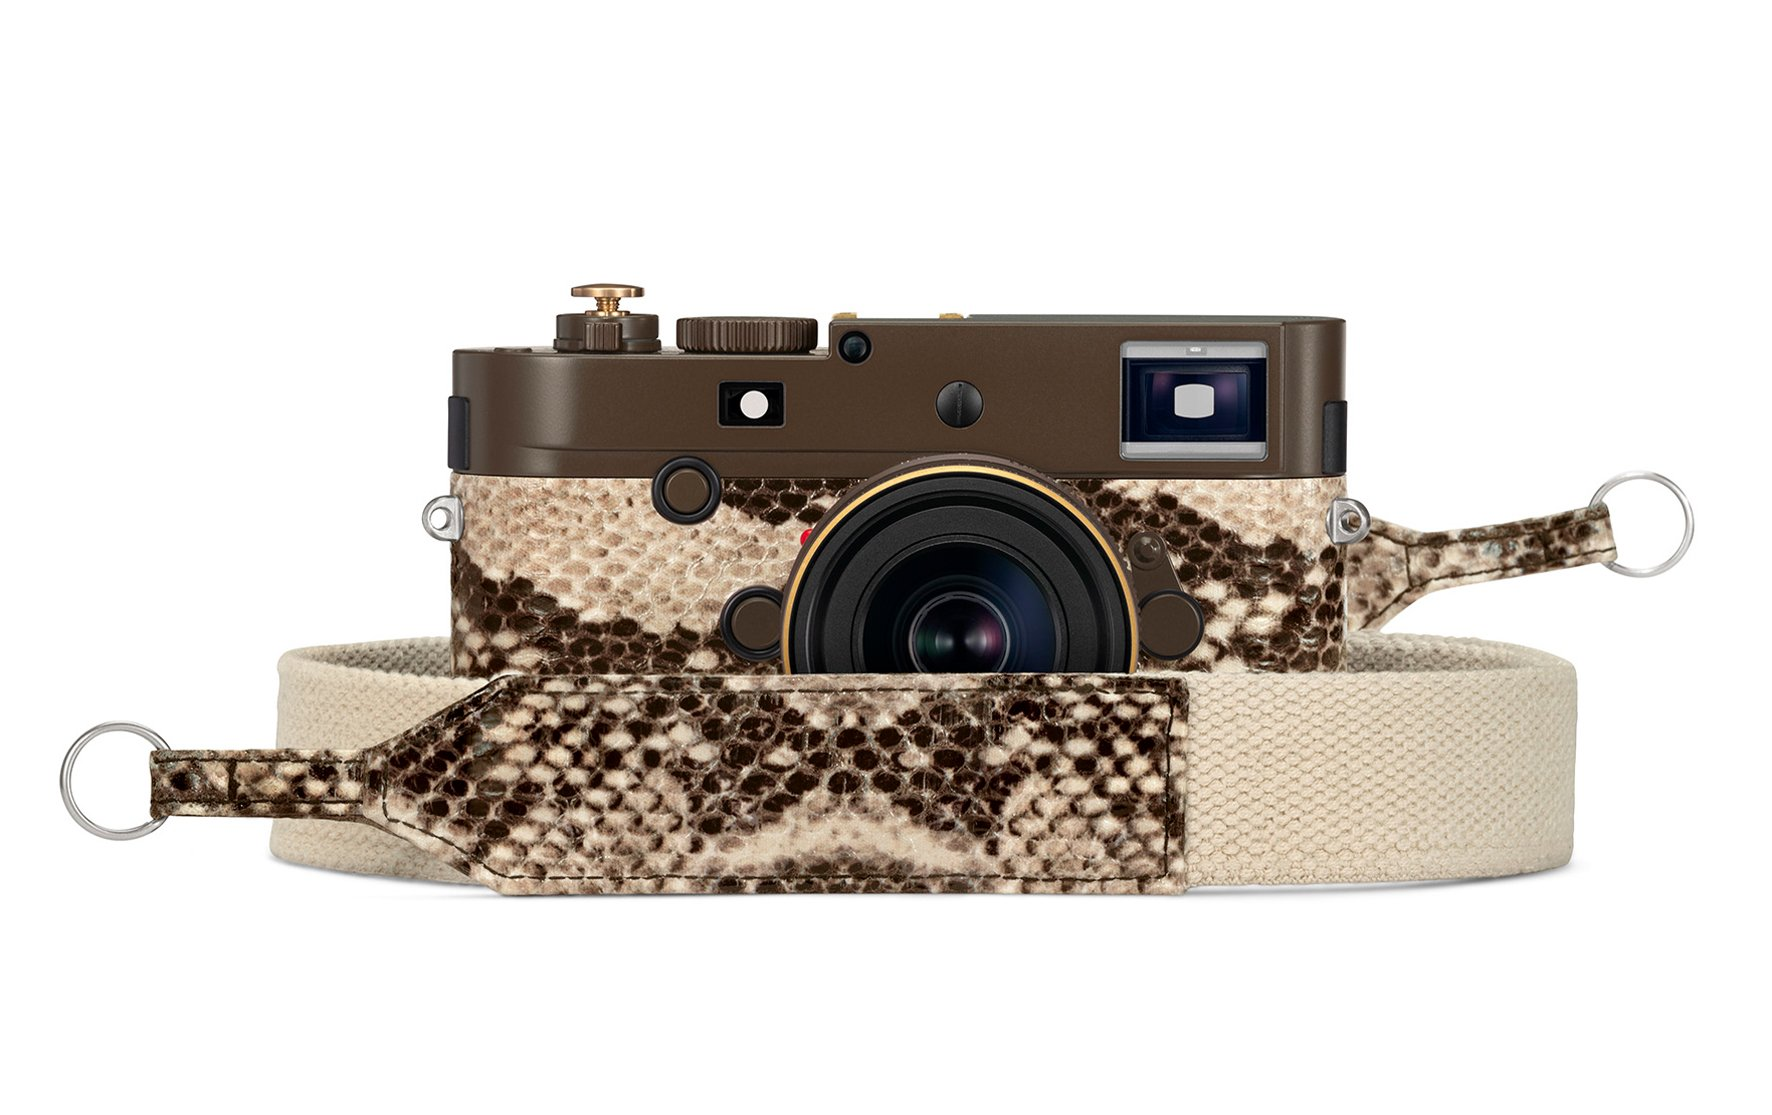 """Leica M Monochrom """"Drifter"""" by Kravitz Design limited edition camera officially announced"""